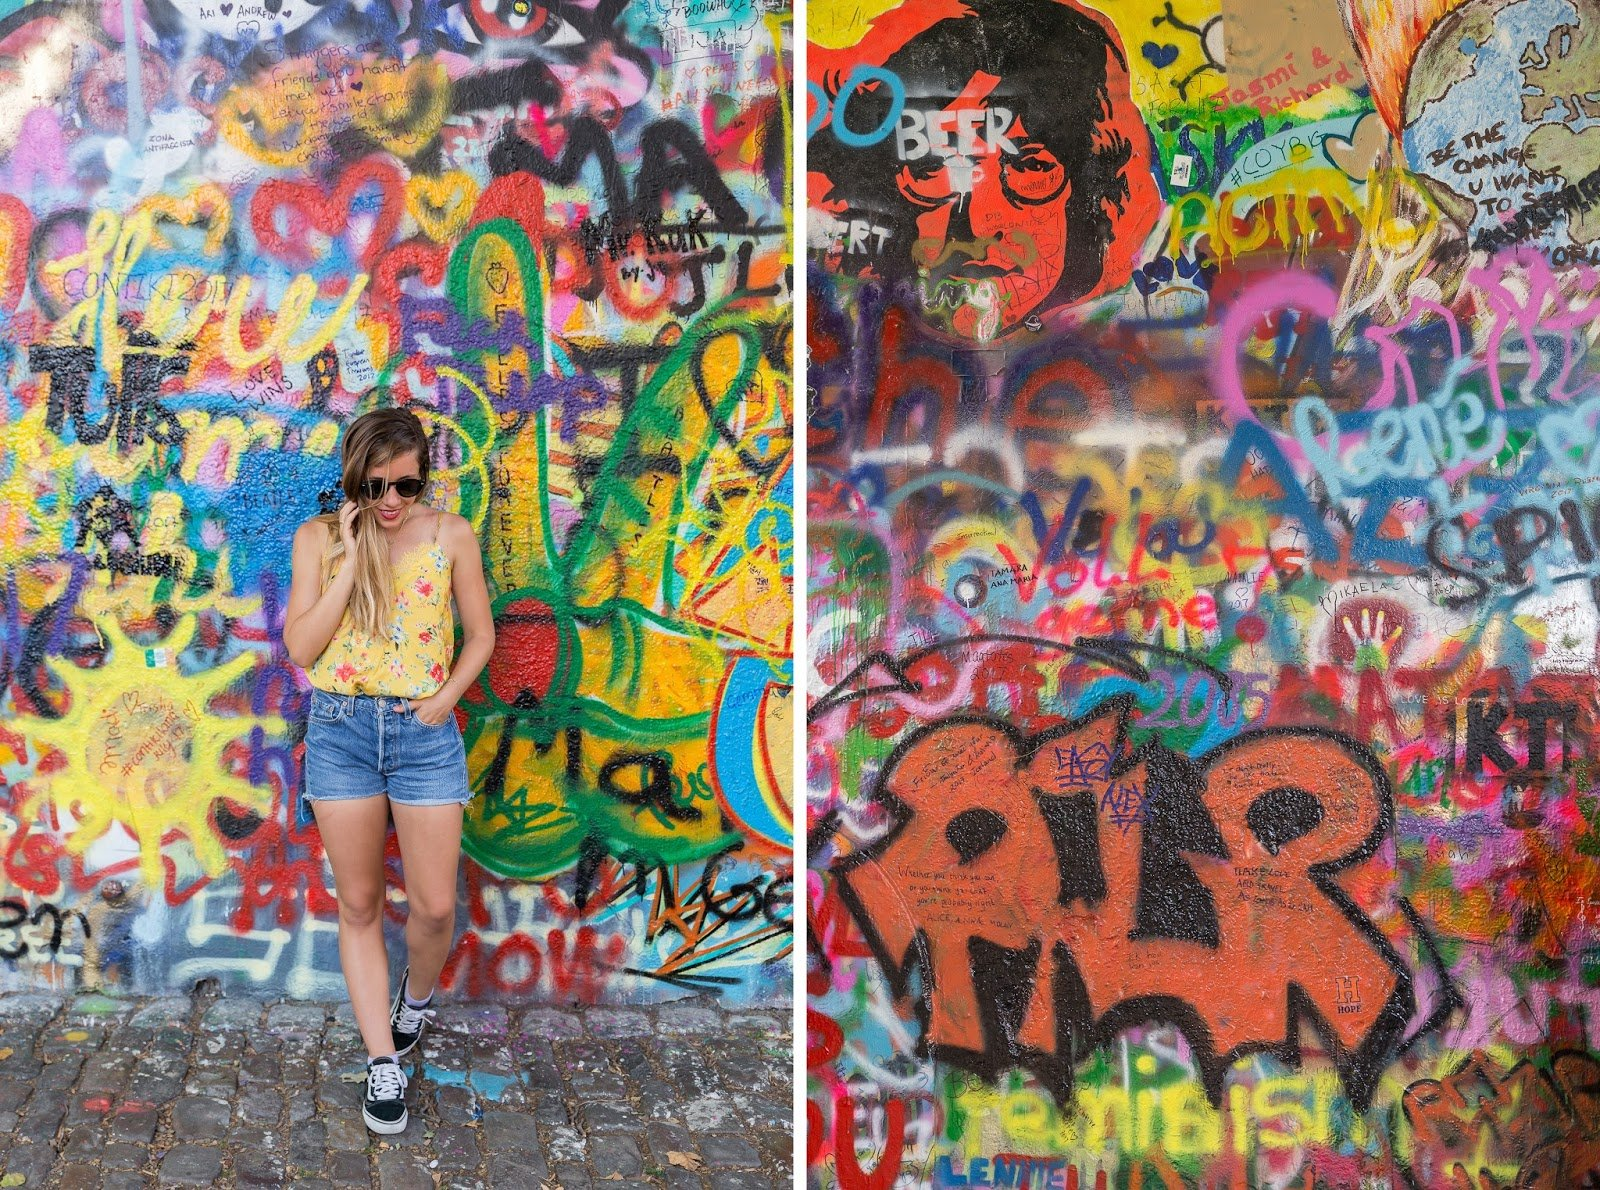 Mur tag John Lennon Wall Prague